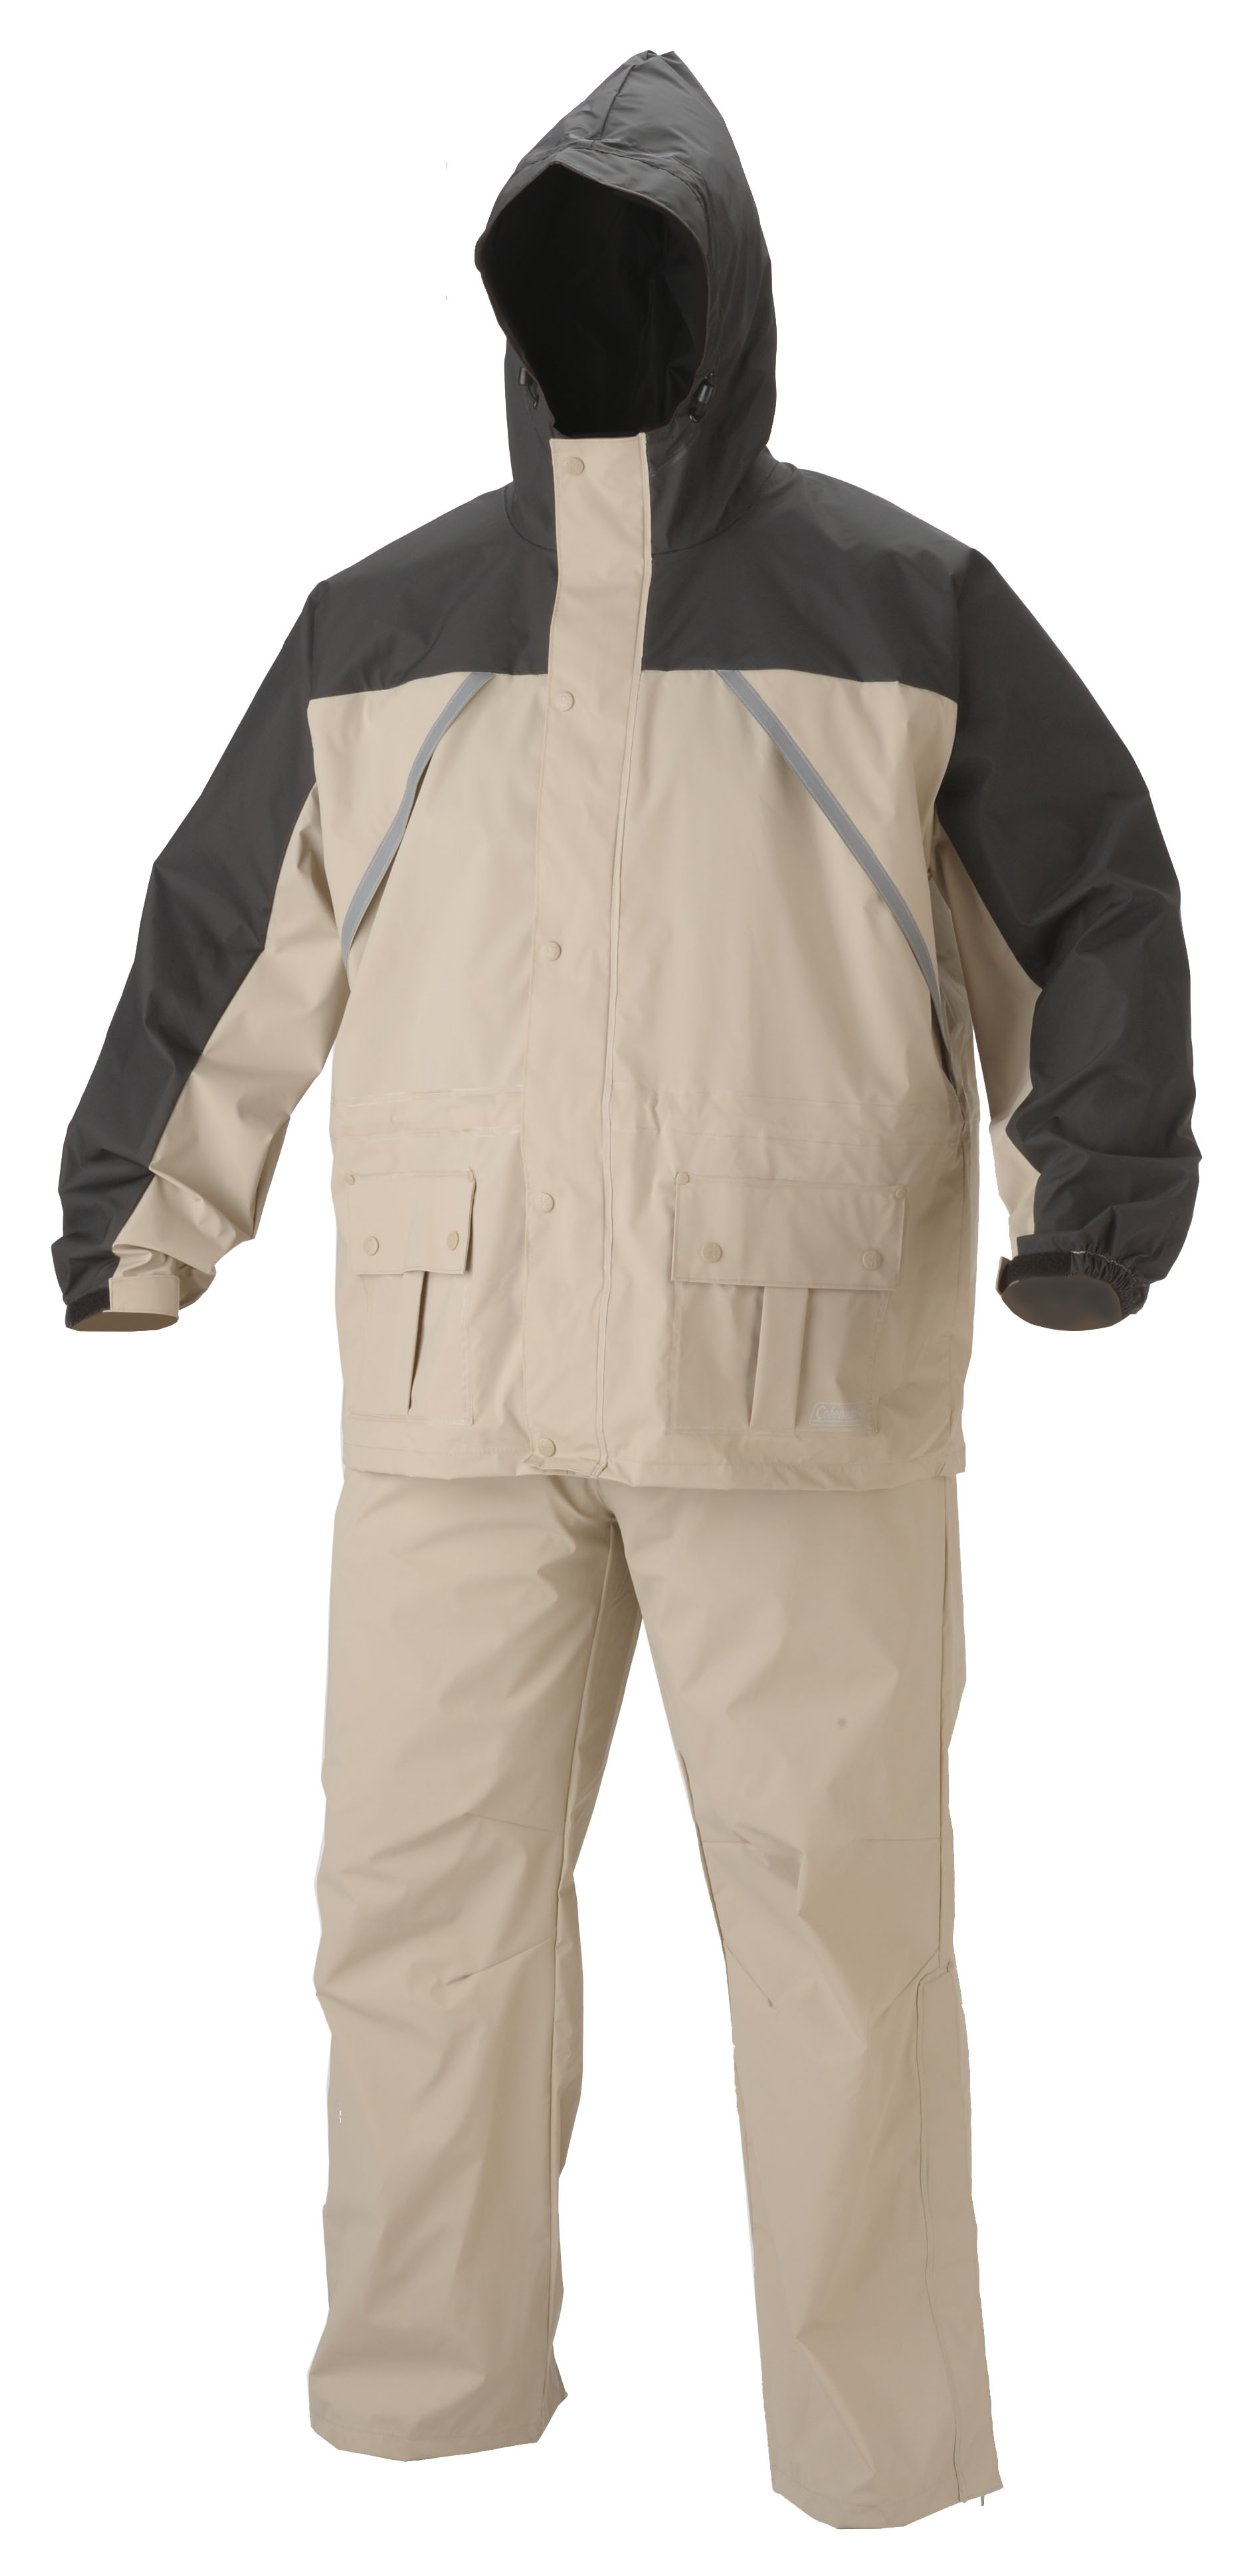 Coleman .20mm PVC/Nylon Rain Suit,Black/Tan,Medium by Coleman